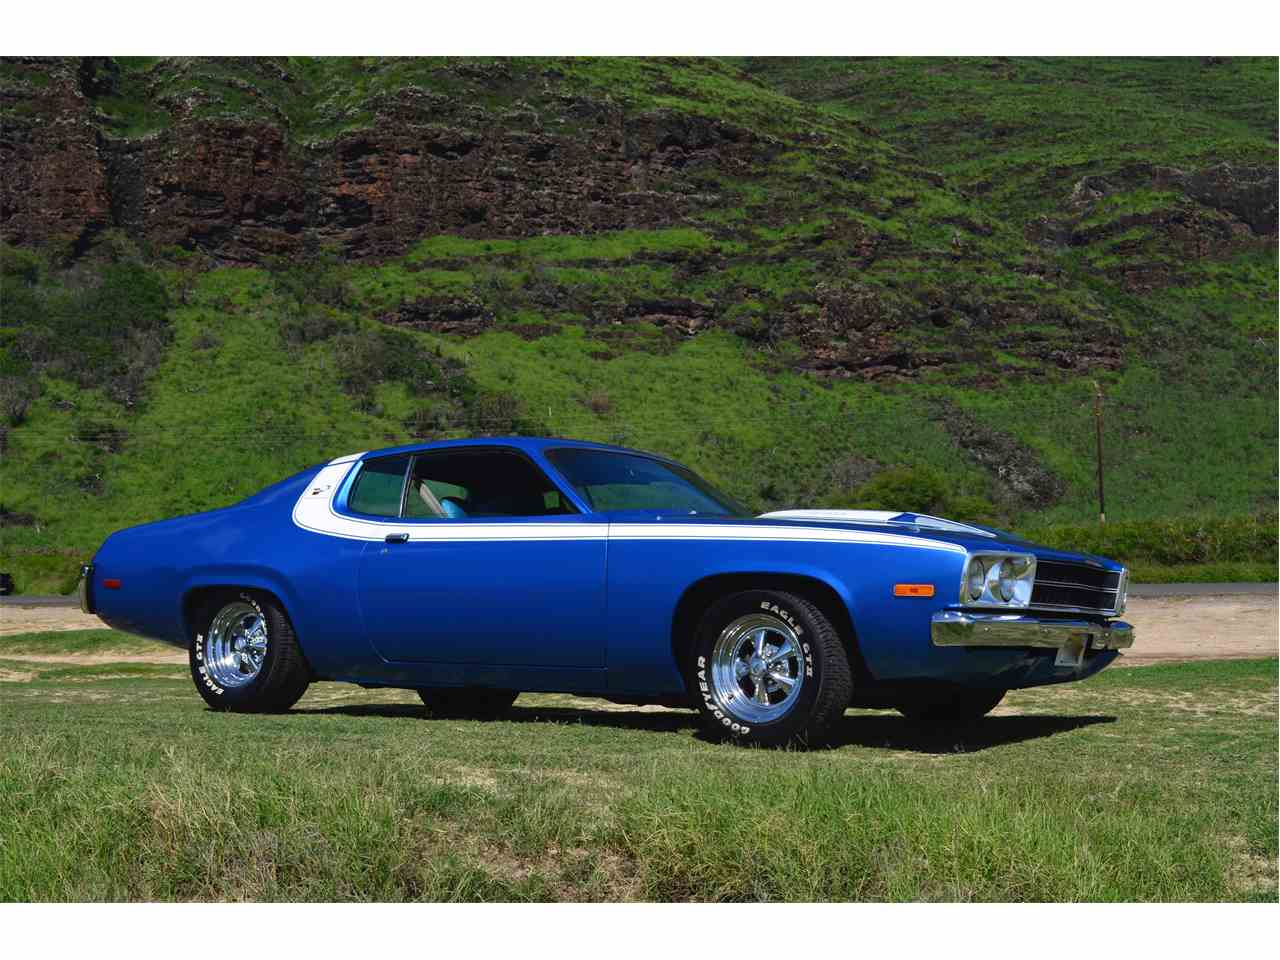 Classic Muscle Cars For Sale In San Antonio Texas